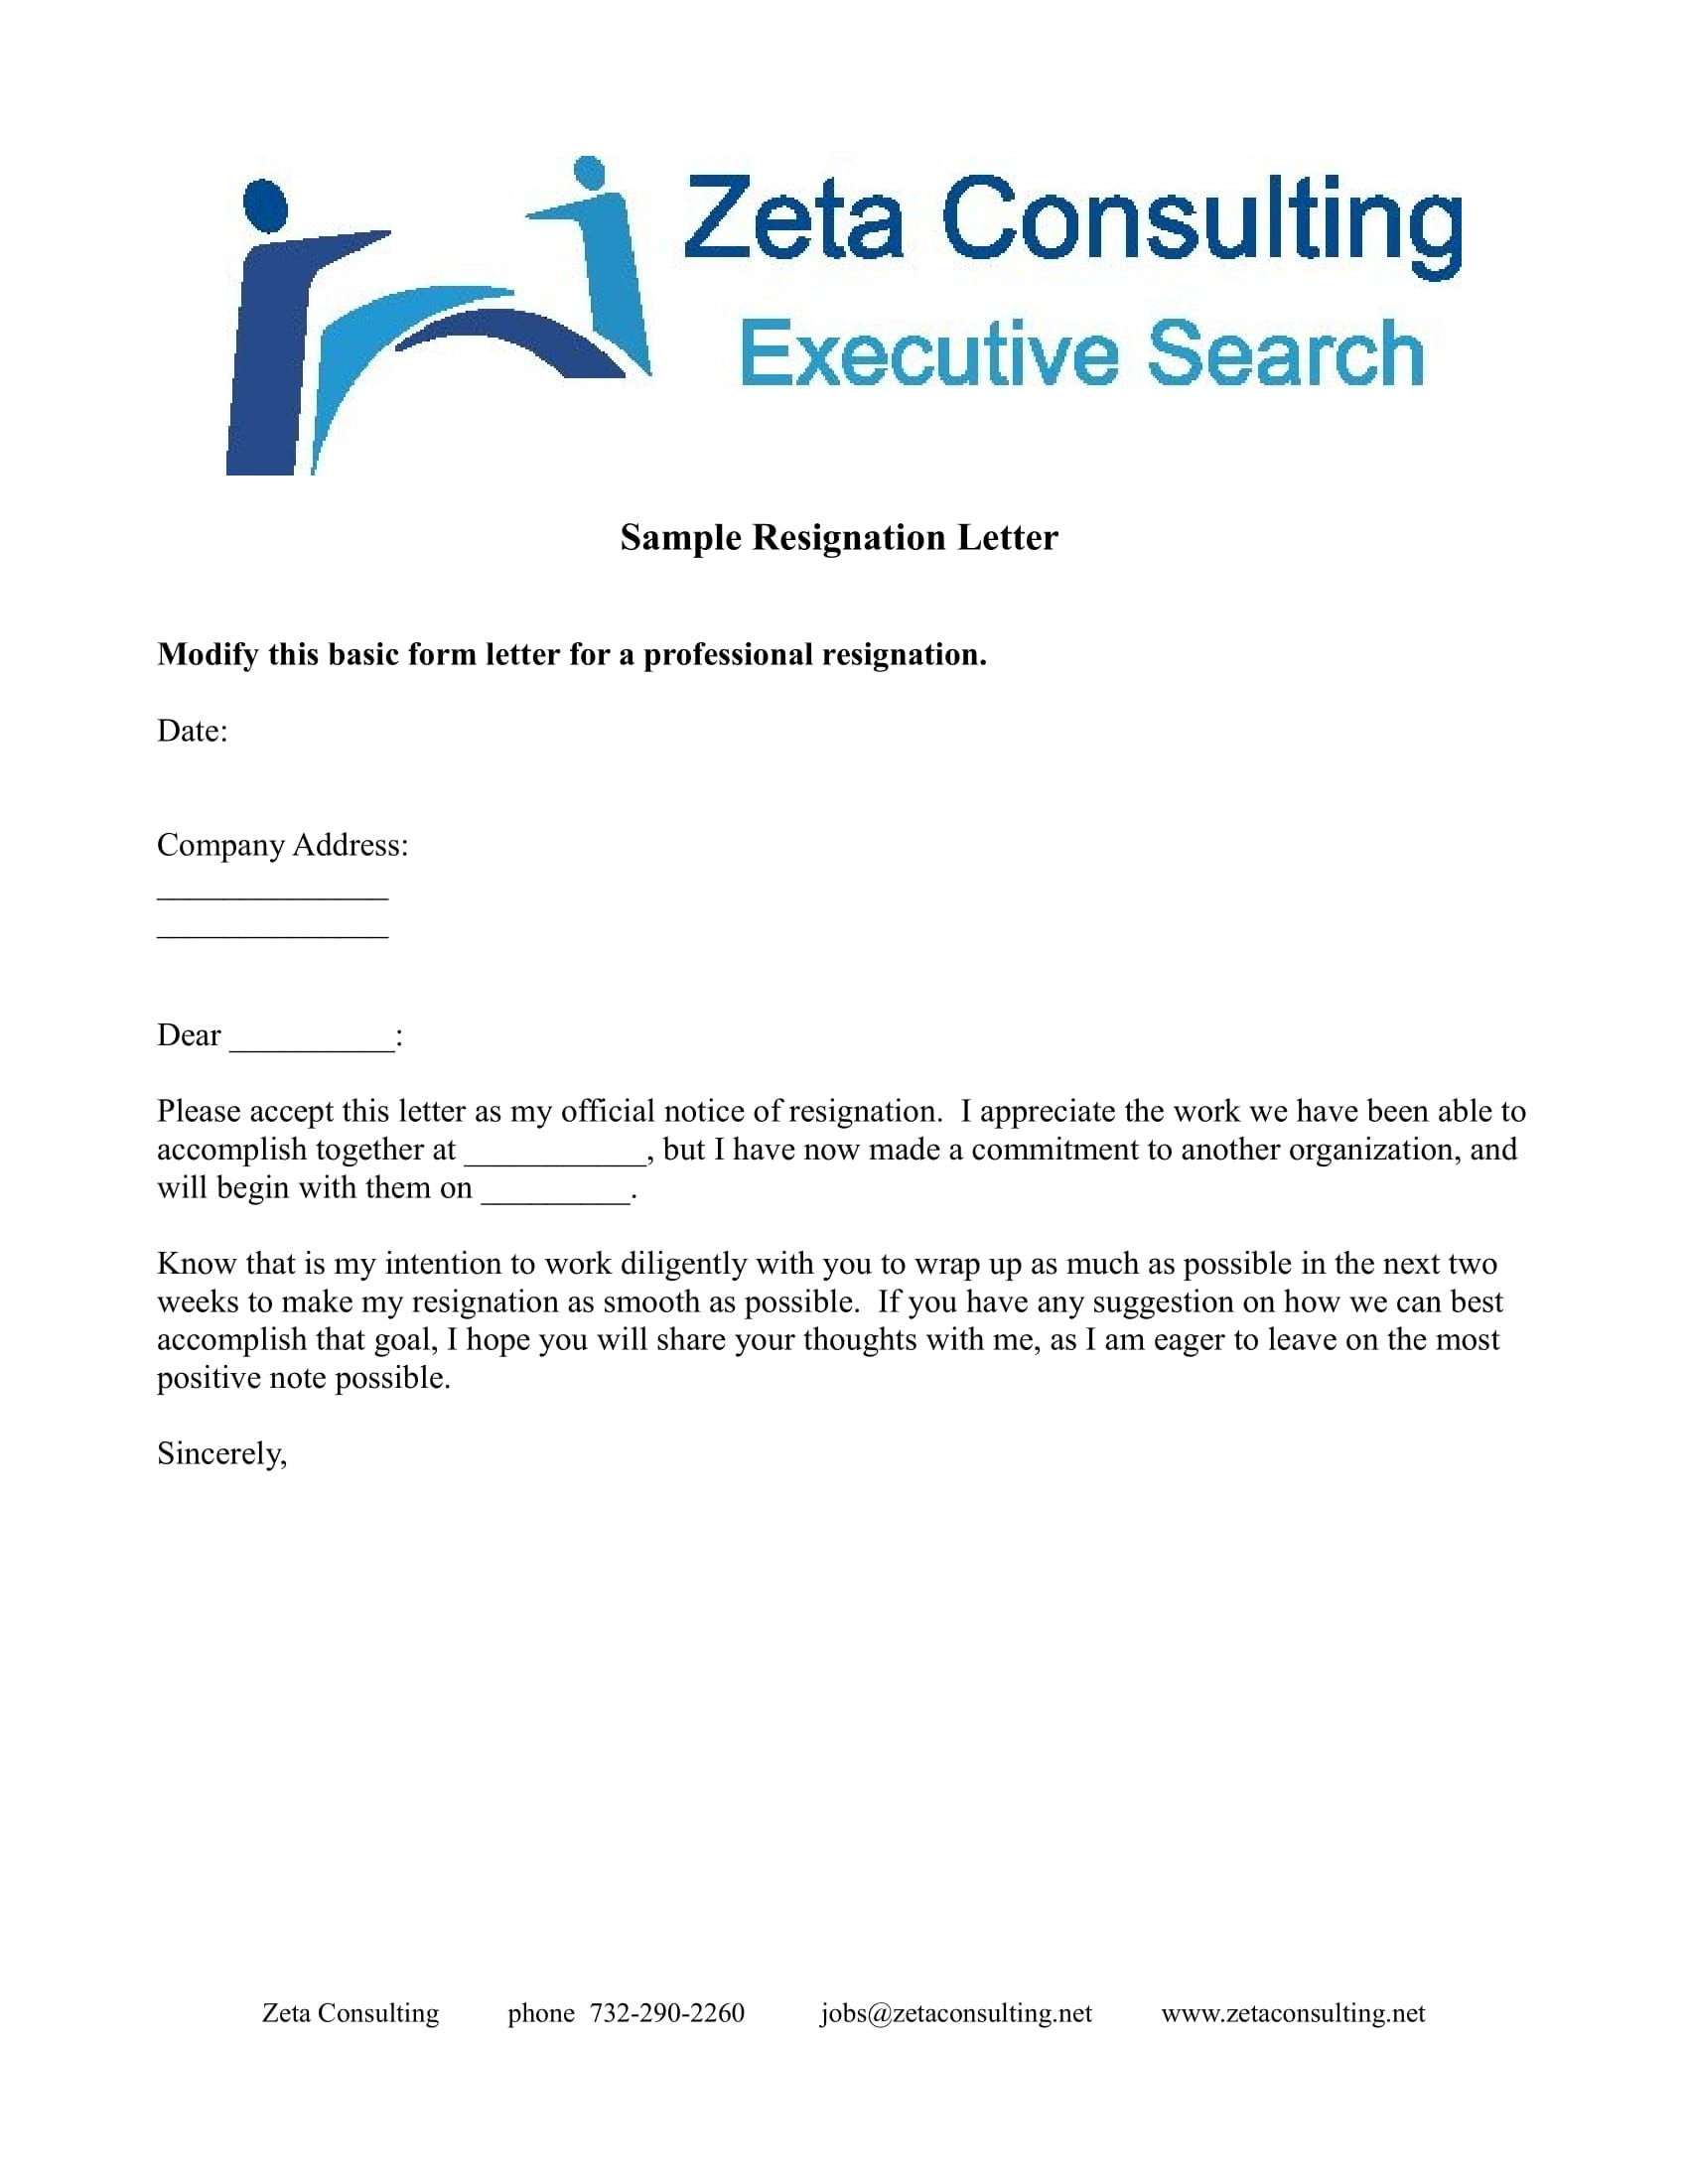 23+ Simple Resignation Letter Examples - PDF, Word | Examples